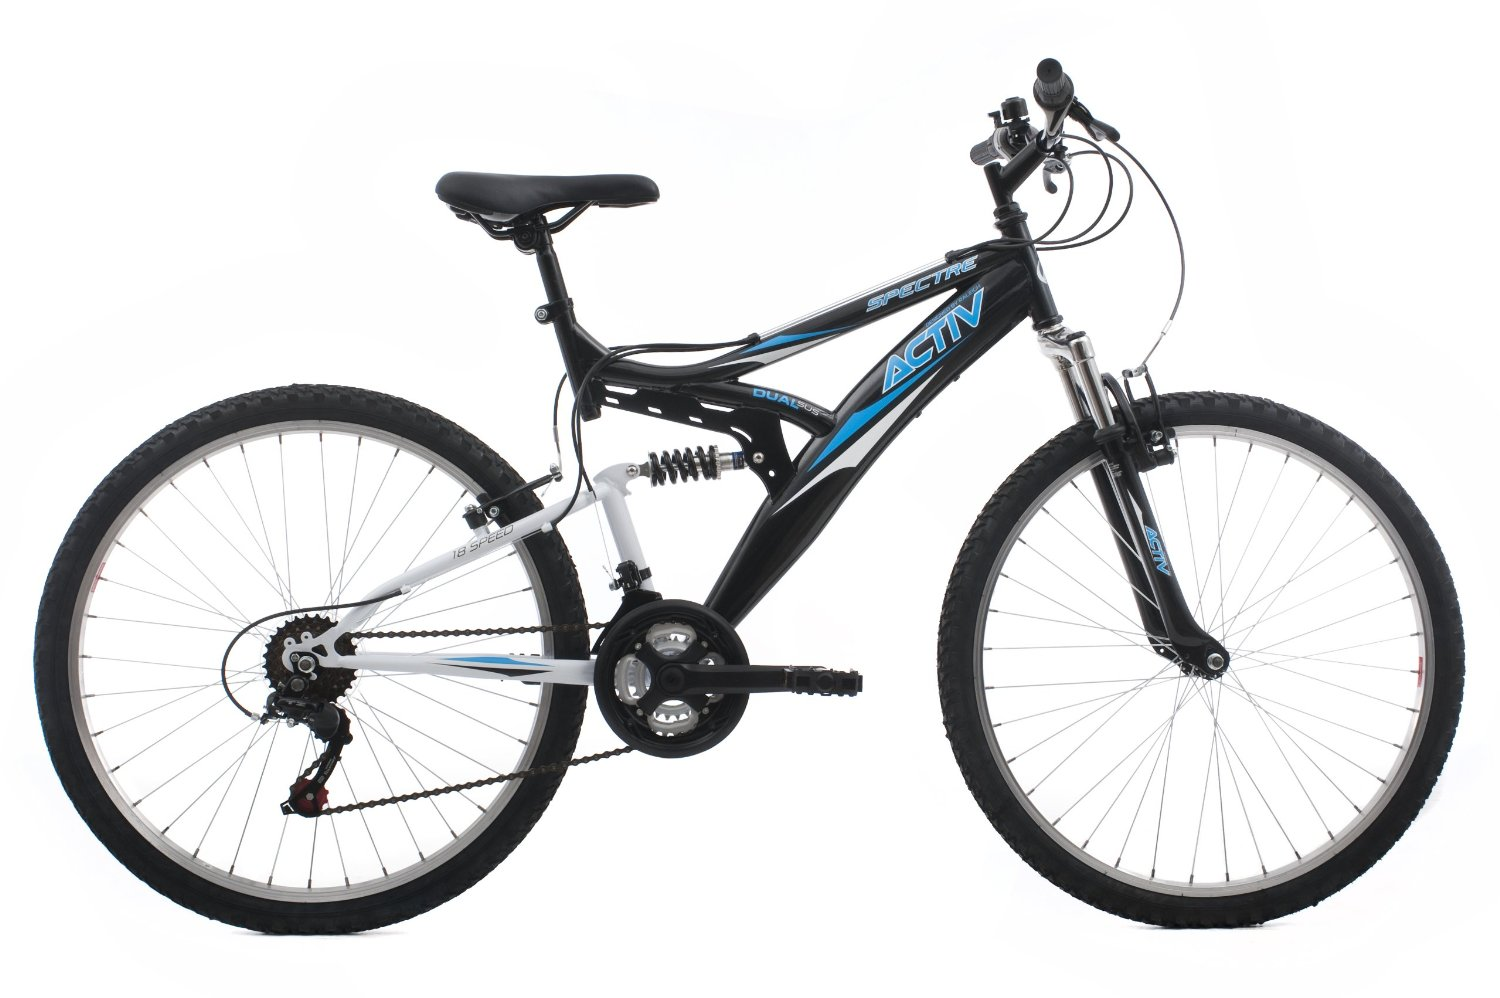 Activ By Raleigh Spectre Men S Dual Suspension Mountain Bike Review